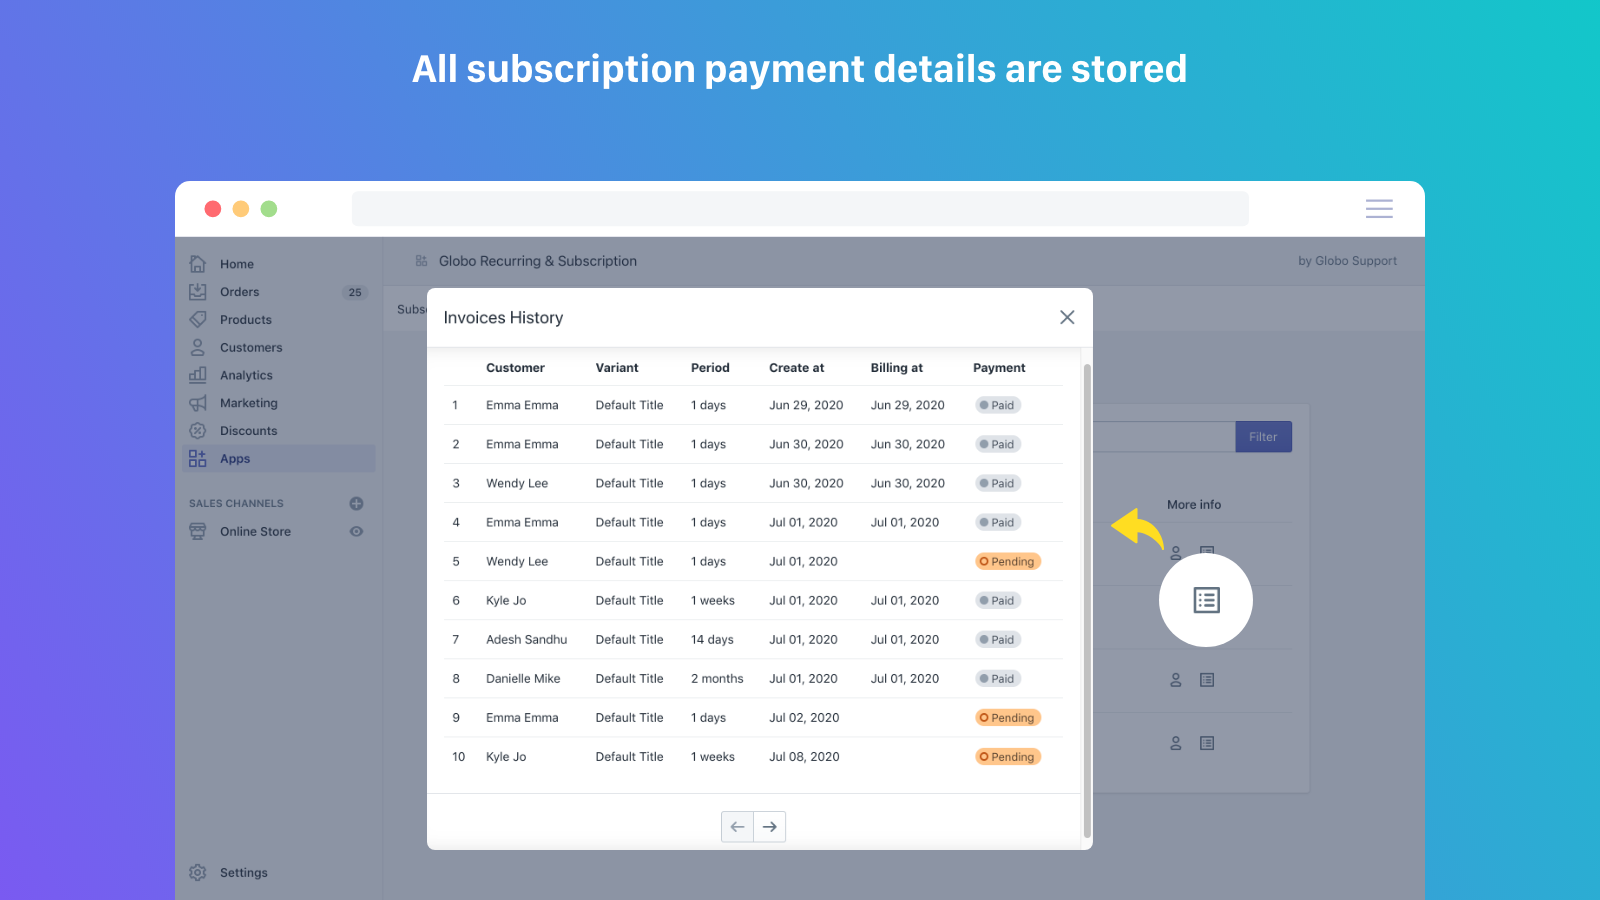 All subscription payment details are stored